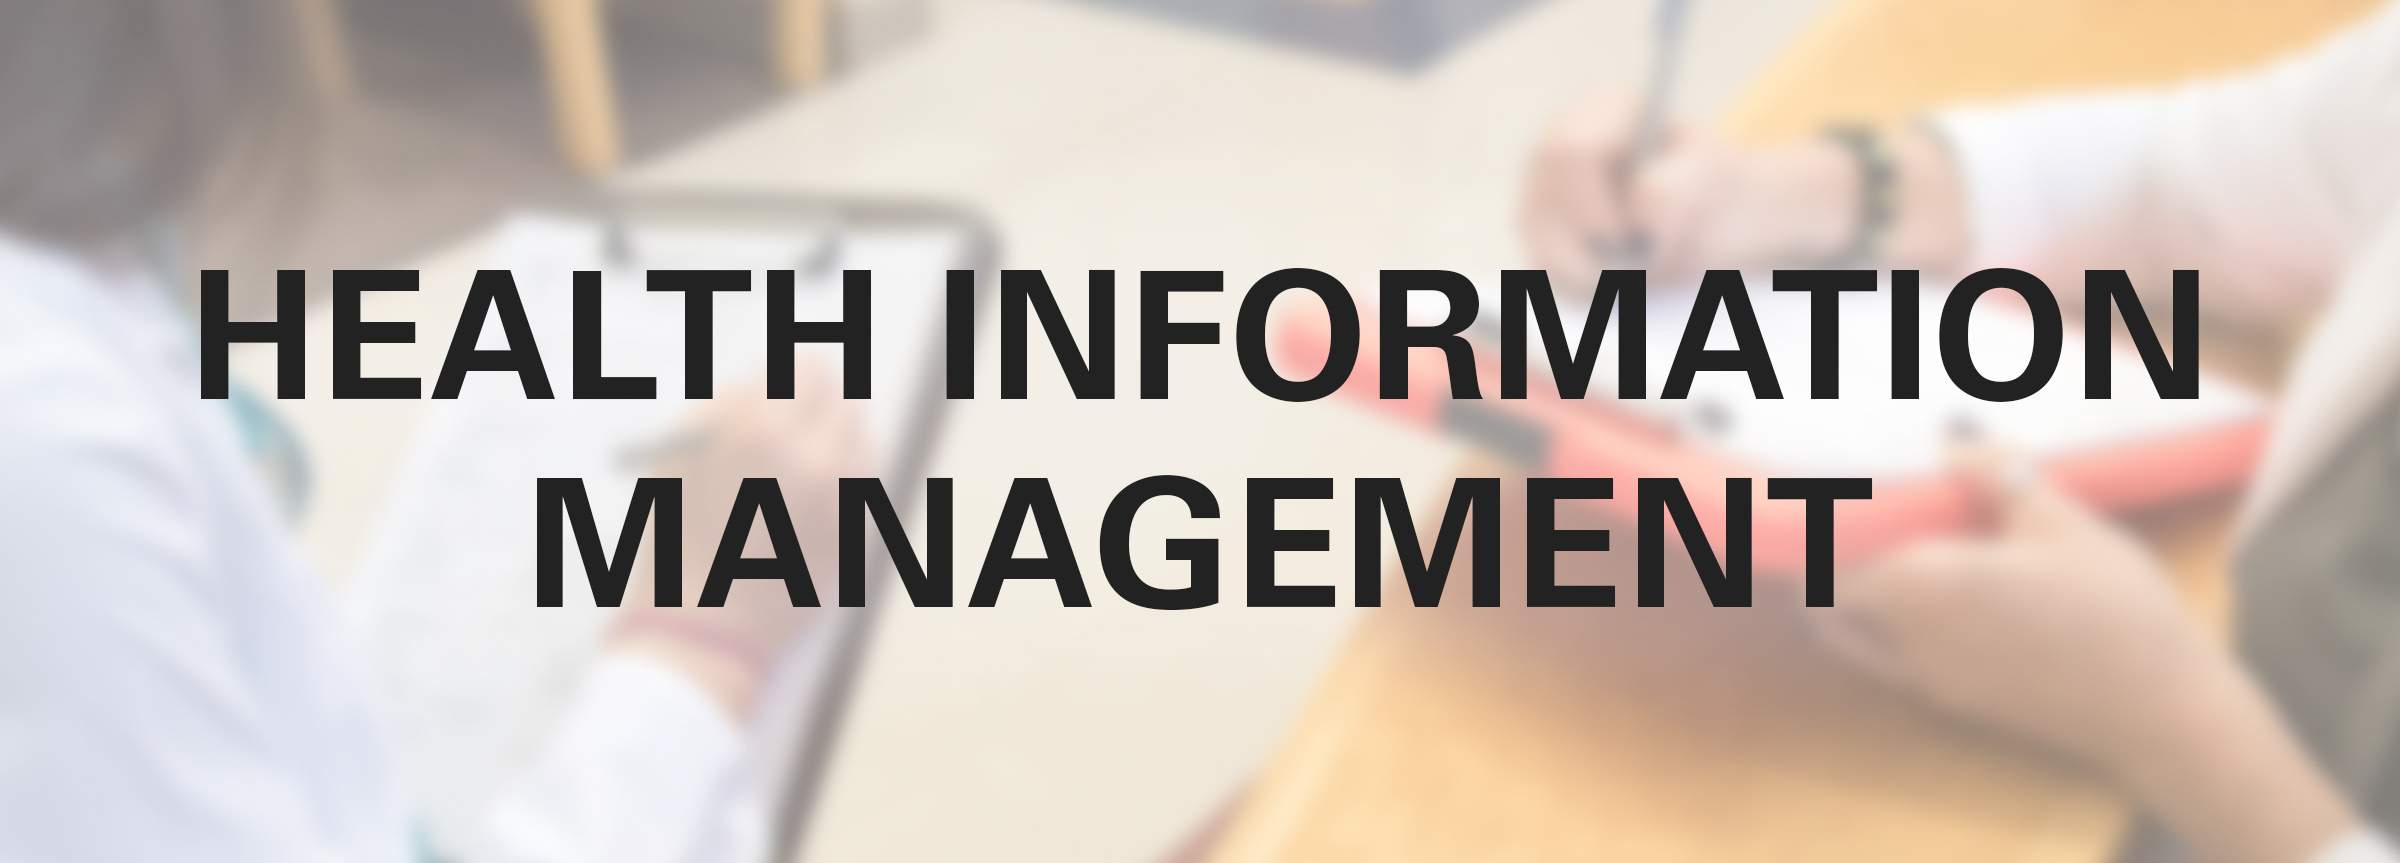 Universities Offering BSc Health Information Management